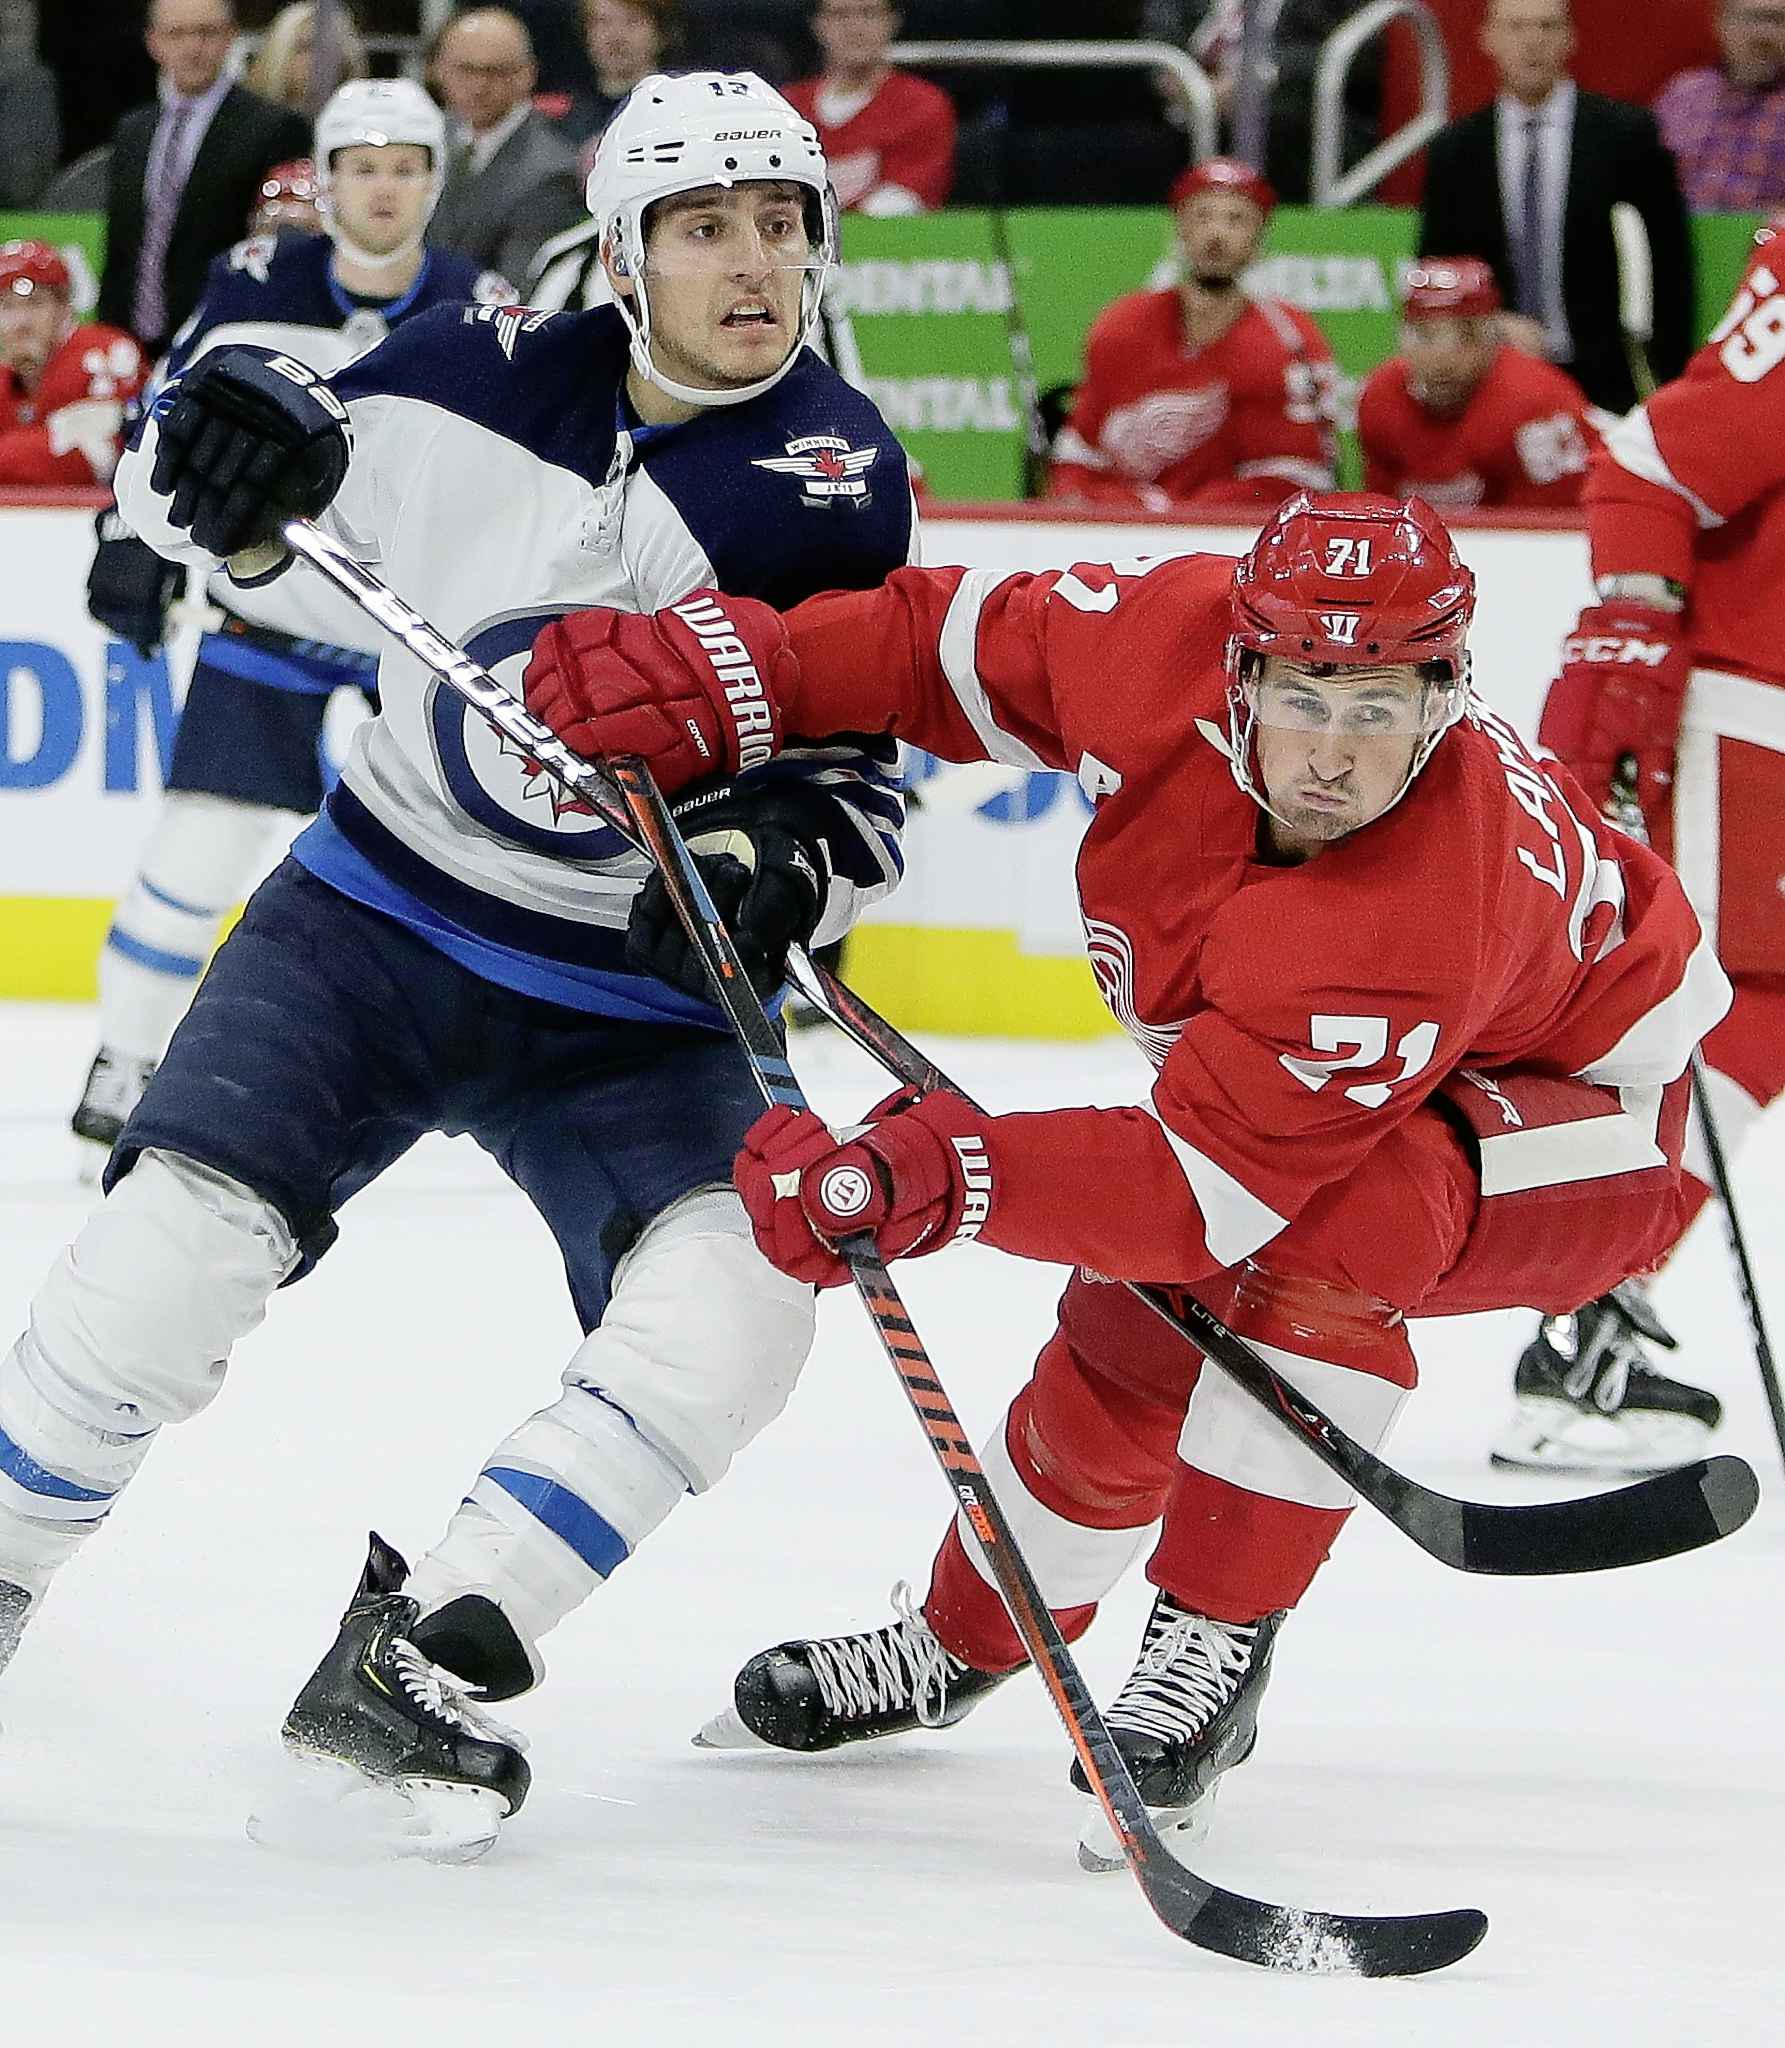 Winnipeg Jets left wing Brandon Tanev, left, battles for position with Detroit Red Wings center Dylan Larkin (71) during the first period of an NHL hockey game Friday, Oct. 26, 2018, in Detroit. (AP Photo/Duane Burleson) CP